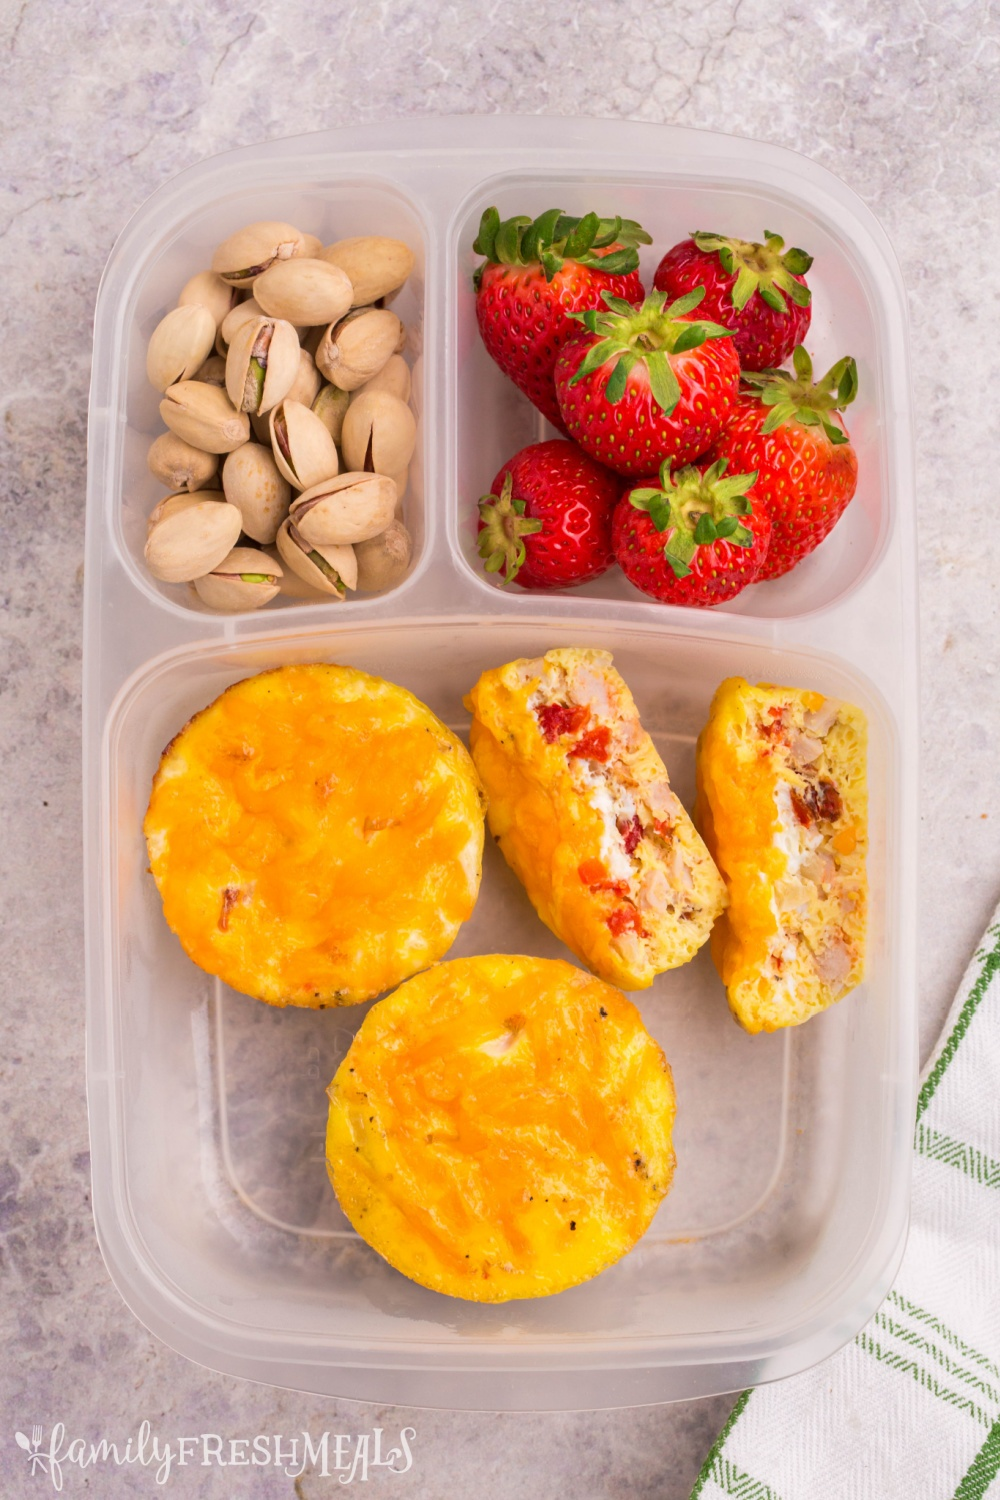 Lunchbox packed with egg cups, strawberries and pistachios